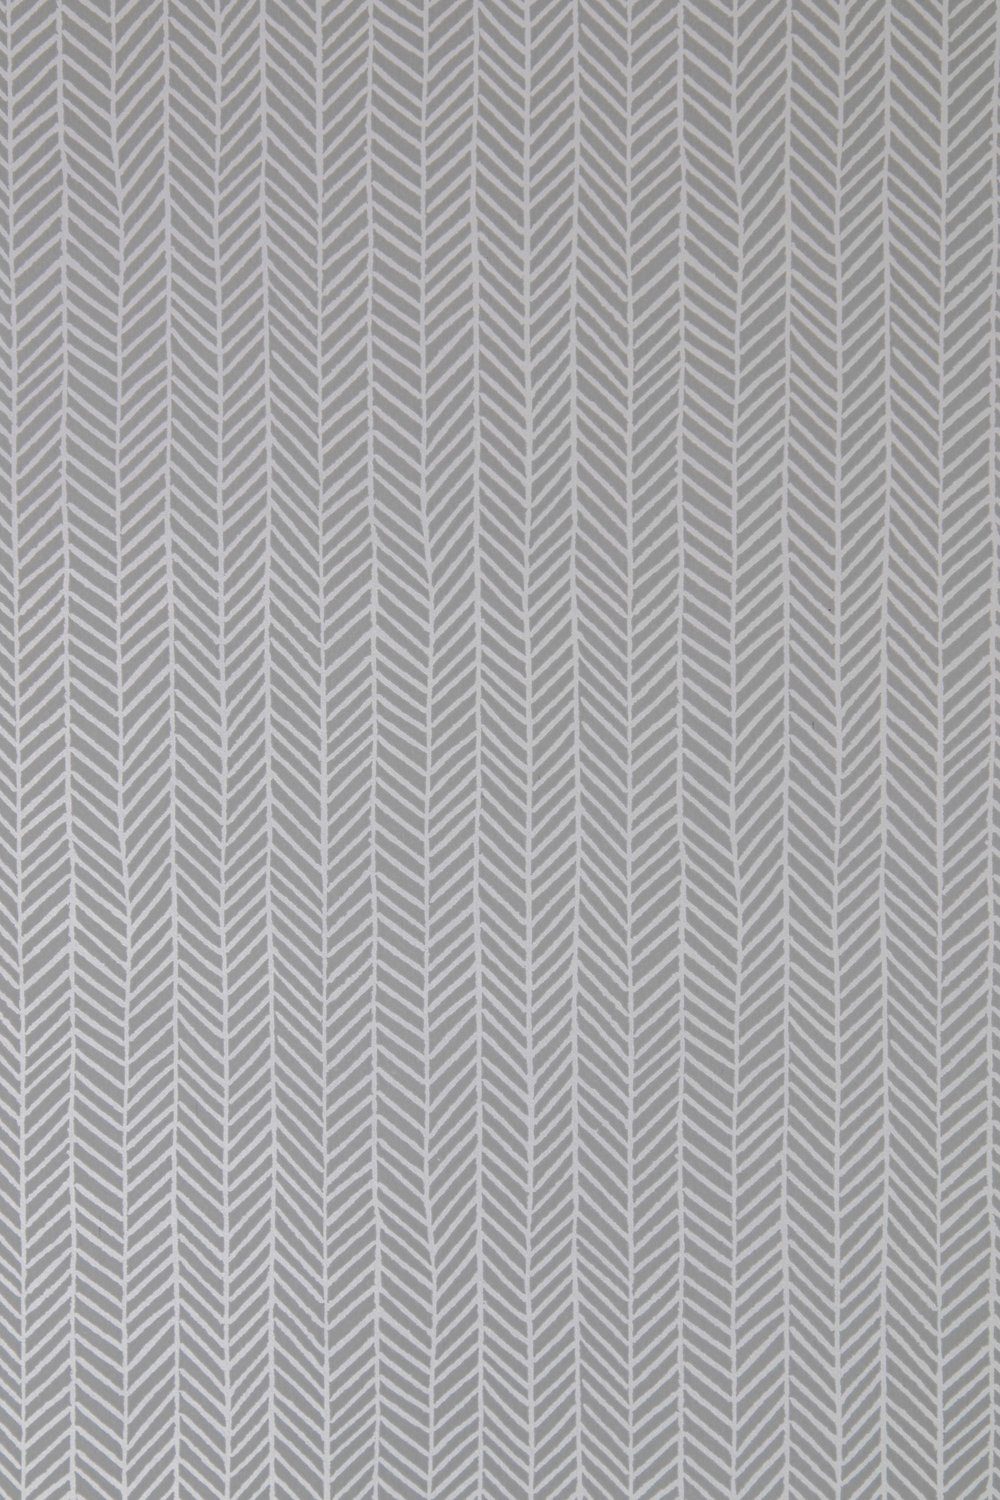 Herringbone in Silver, SL190-07